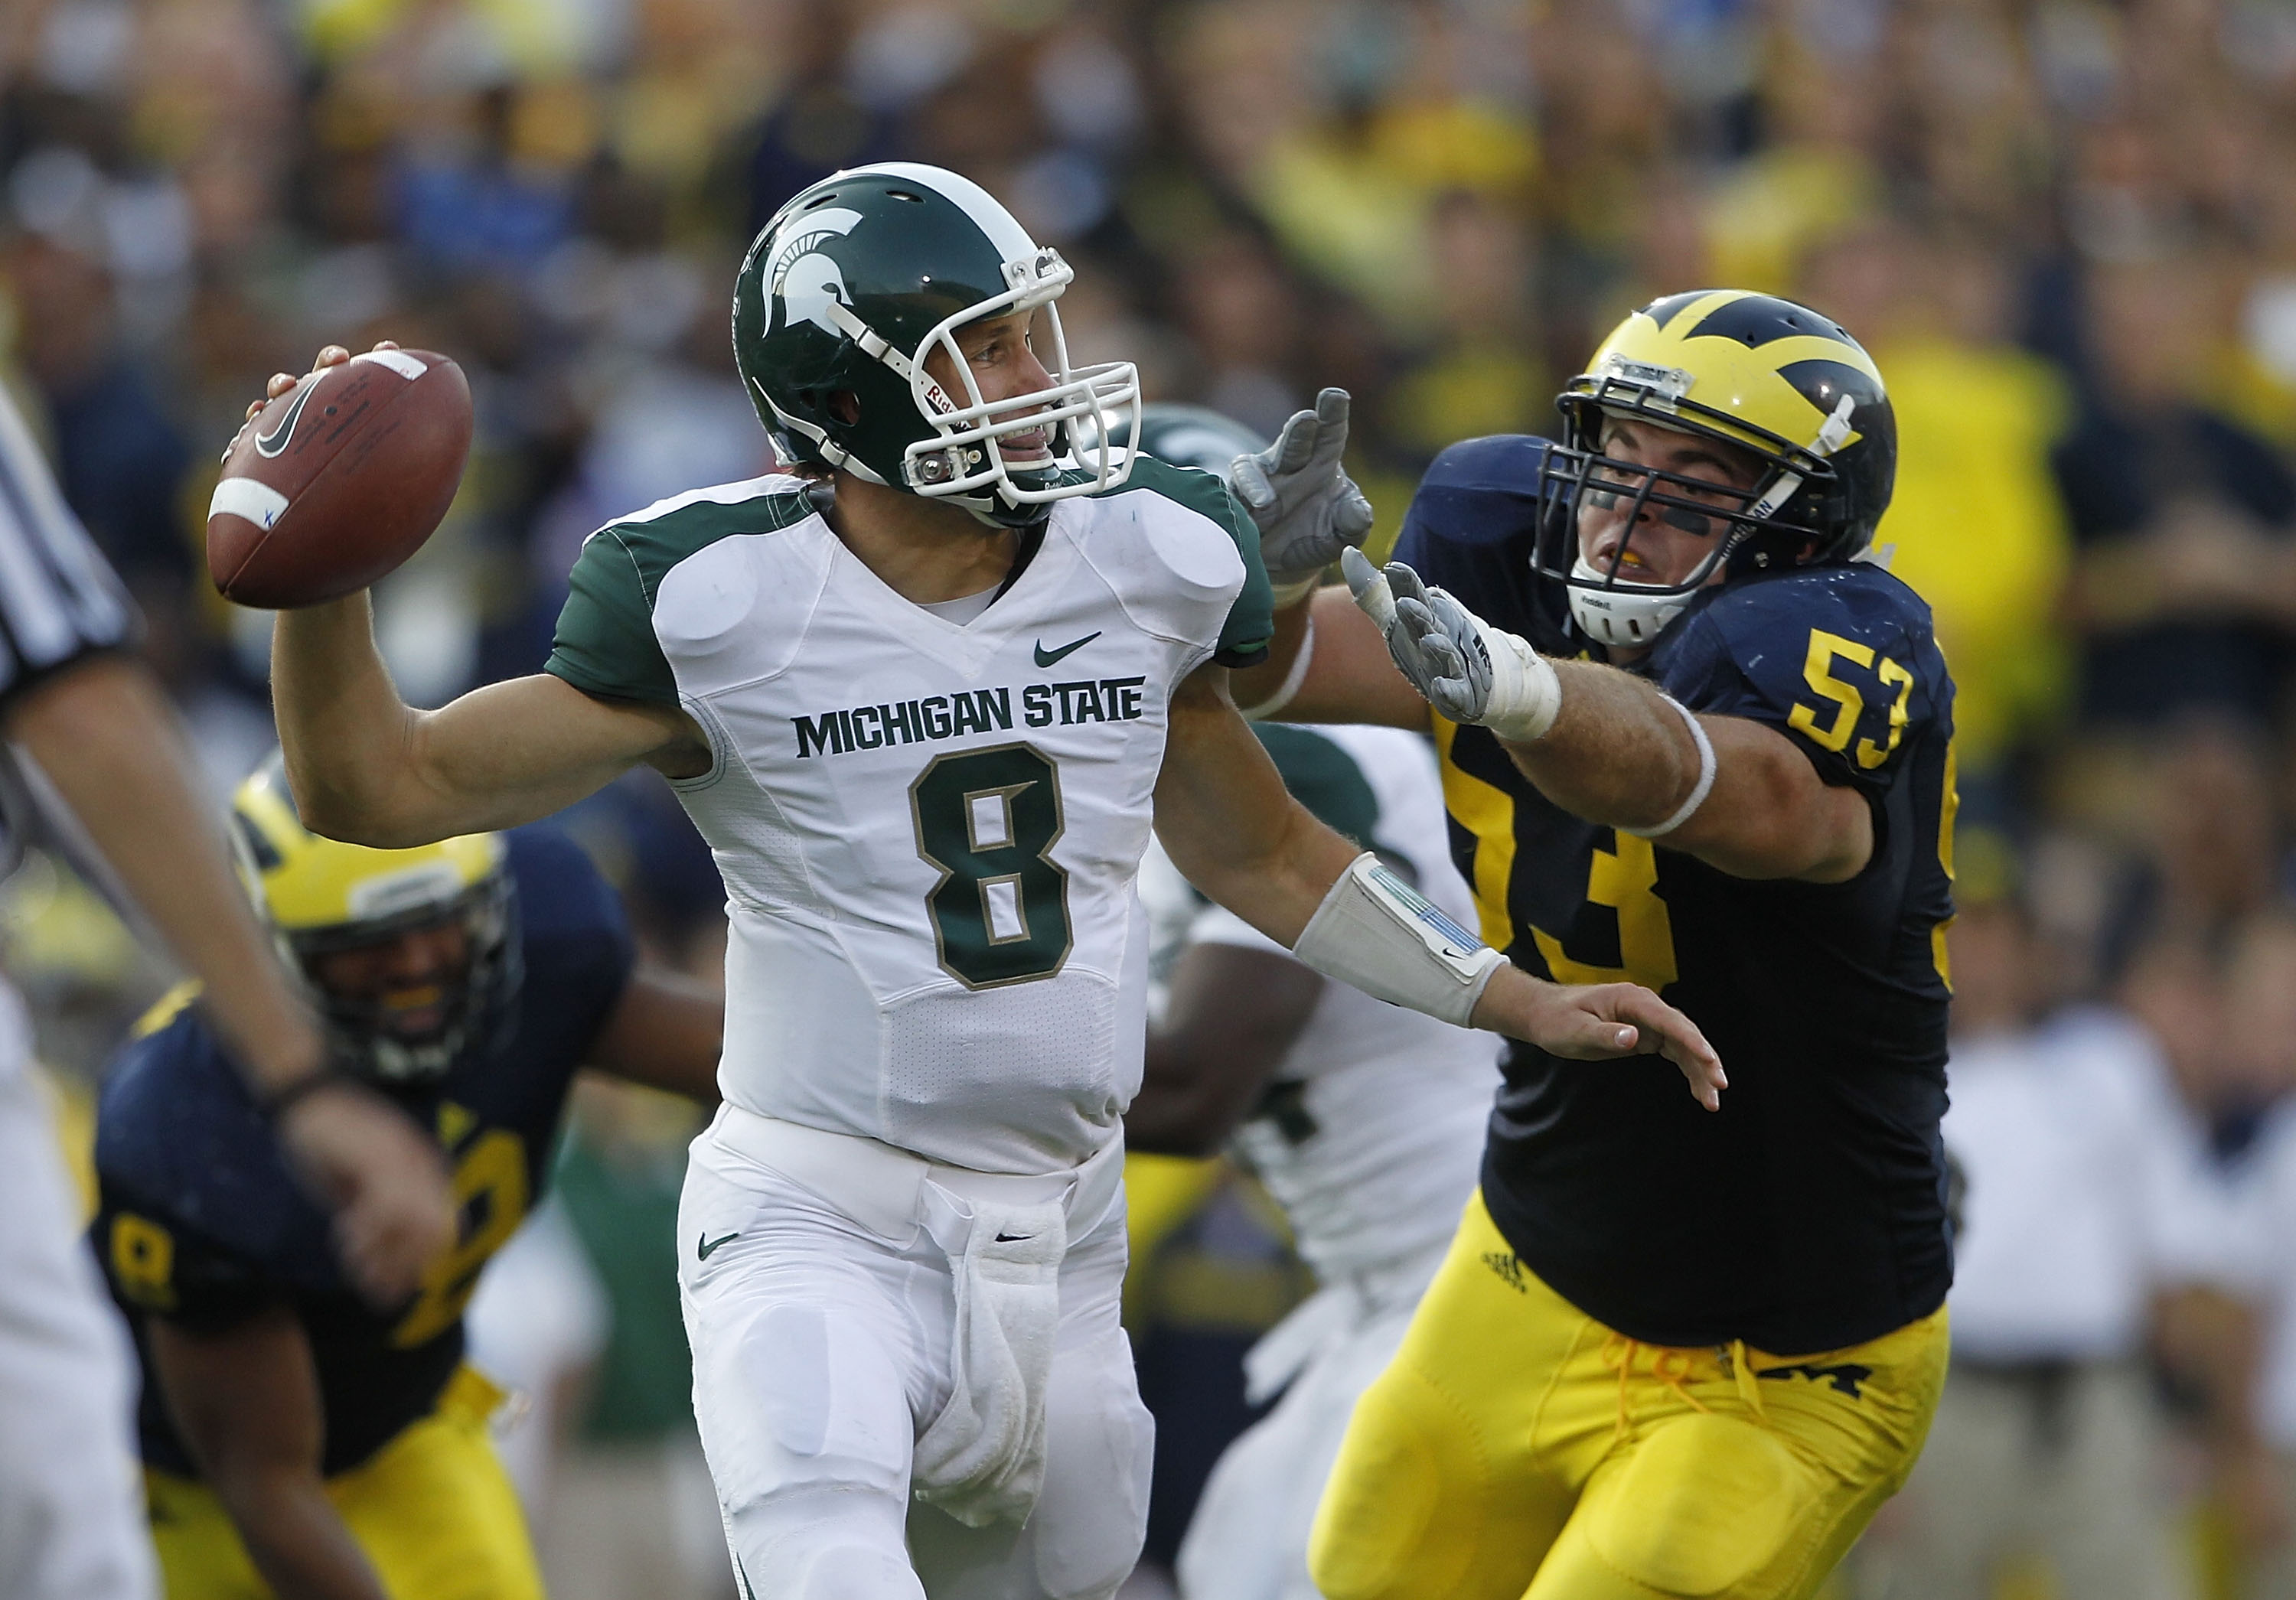 ANN ARBOR, MI - OCTOBER 09:  Kirk Cousins #8 of the Michigan State Spartans rolls out to pass as Ryan Van Bergen #53 of the Michigan Wolverines attempts to make the sack during the game on October 9, 2010 at Michigan Stadium in Ann Arbor, Michigan. The Mi